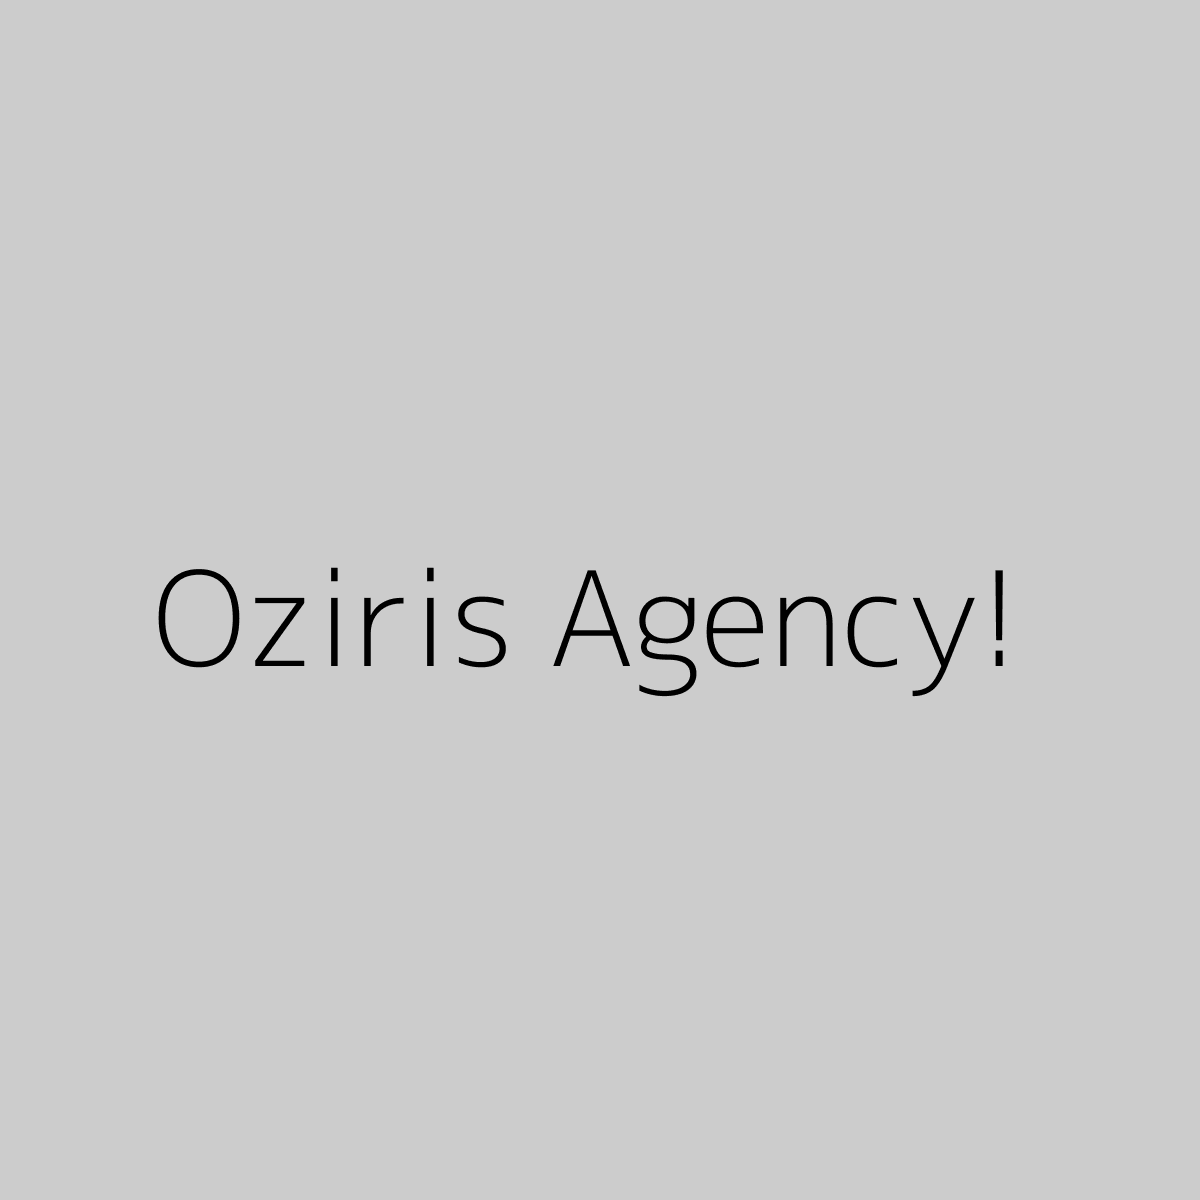 1200x1200&text=Oziris+Agency!